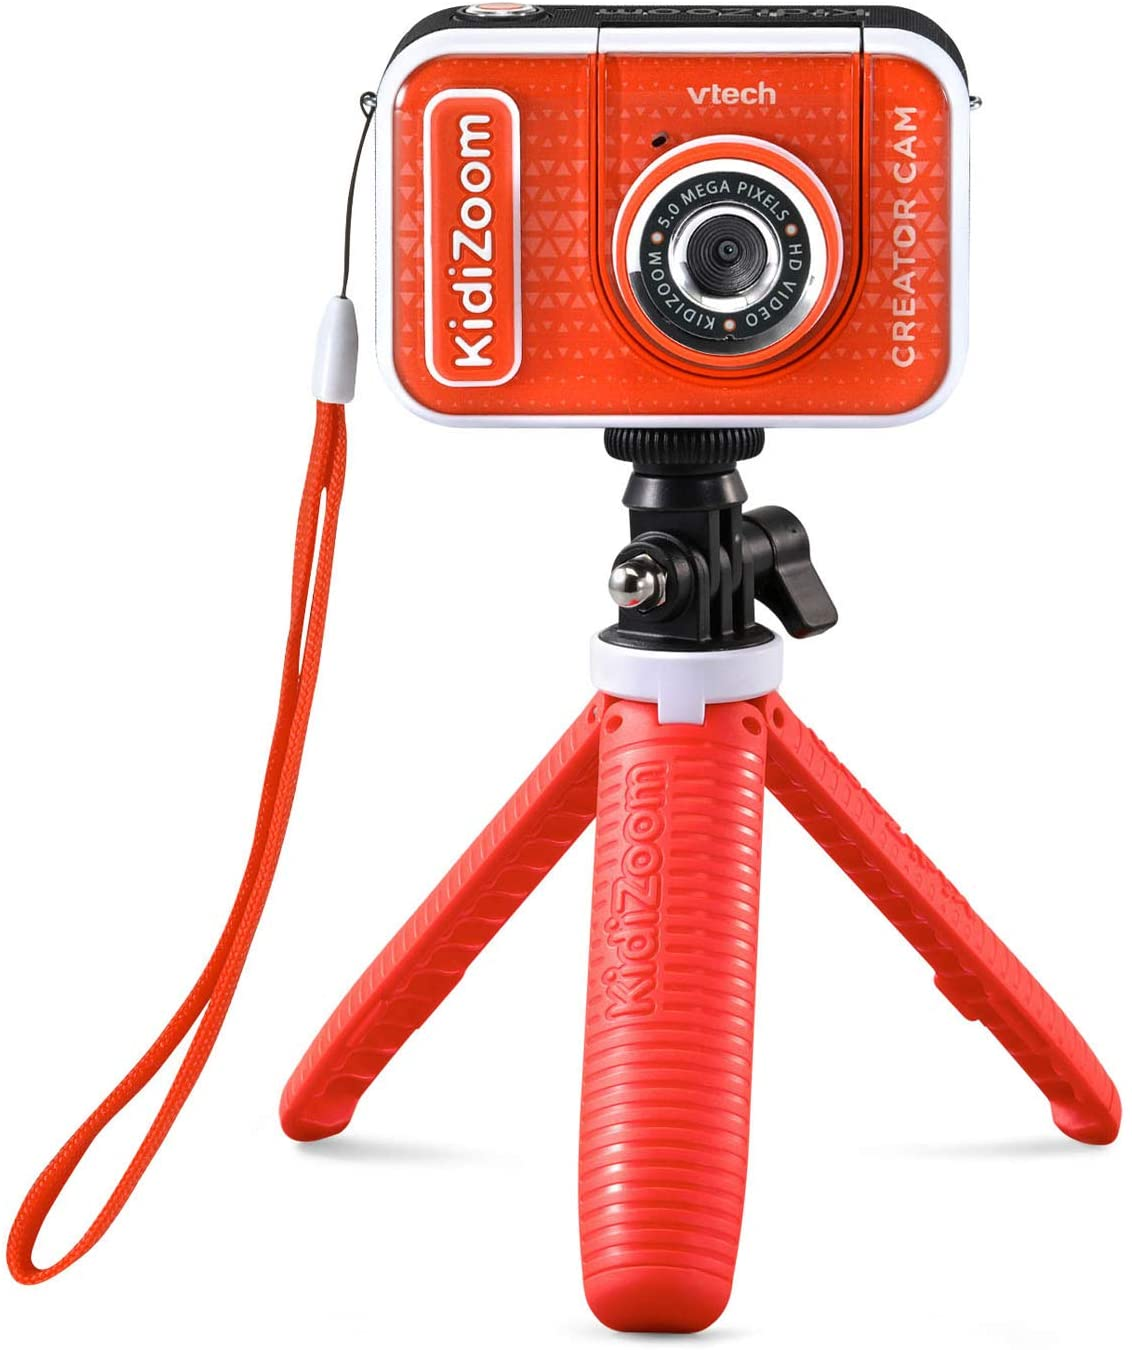 Vtech KidiZoom Creator Cam, best gifts for 7 year old boys